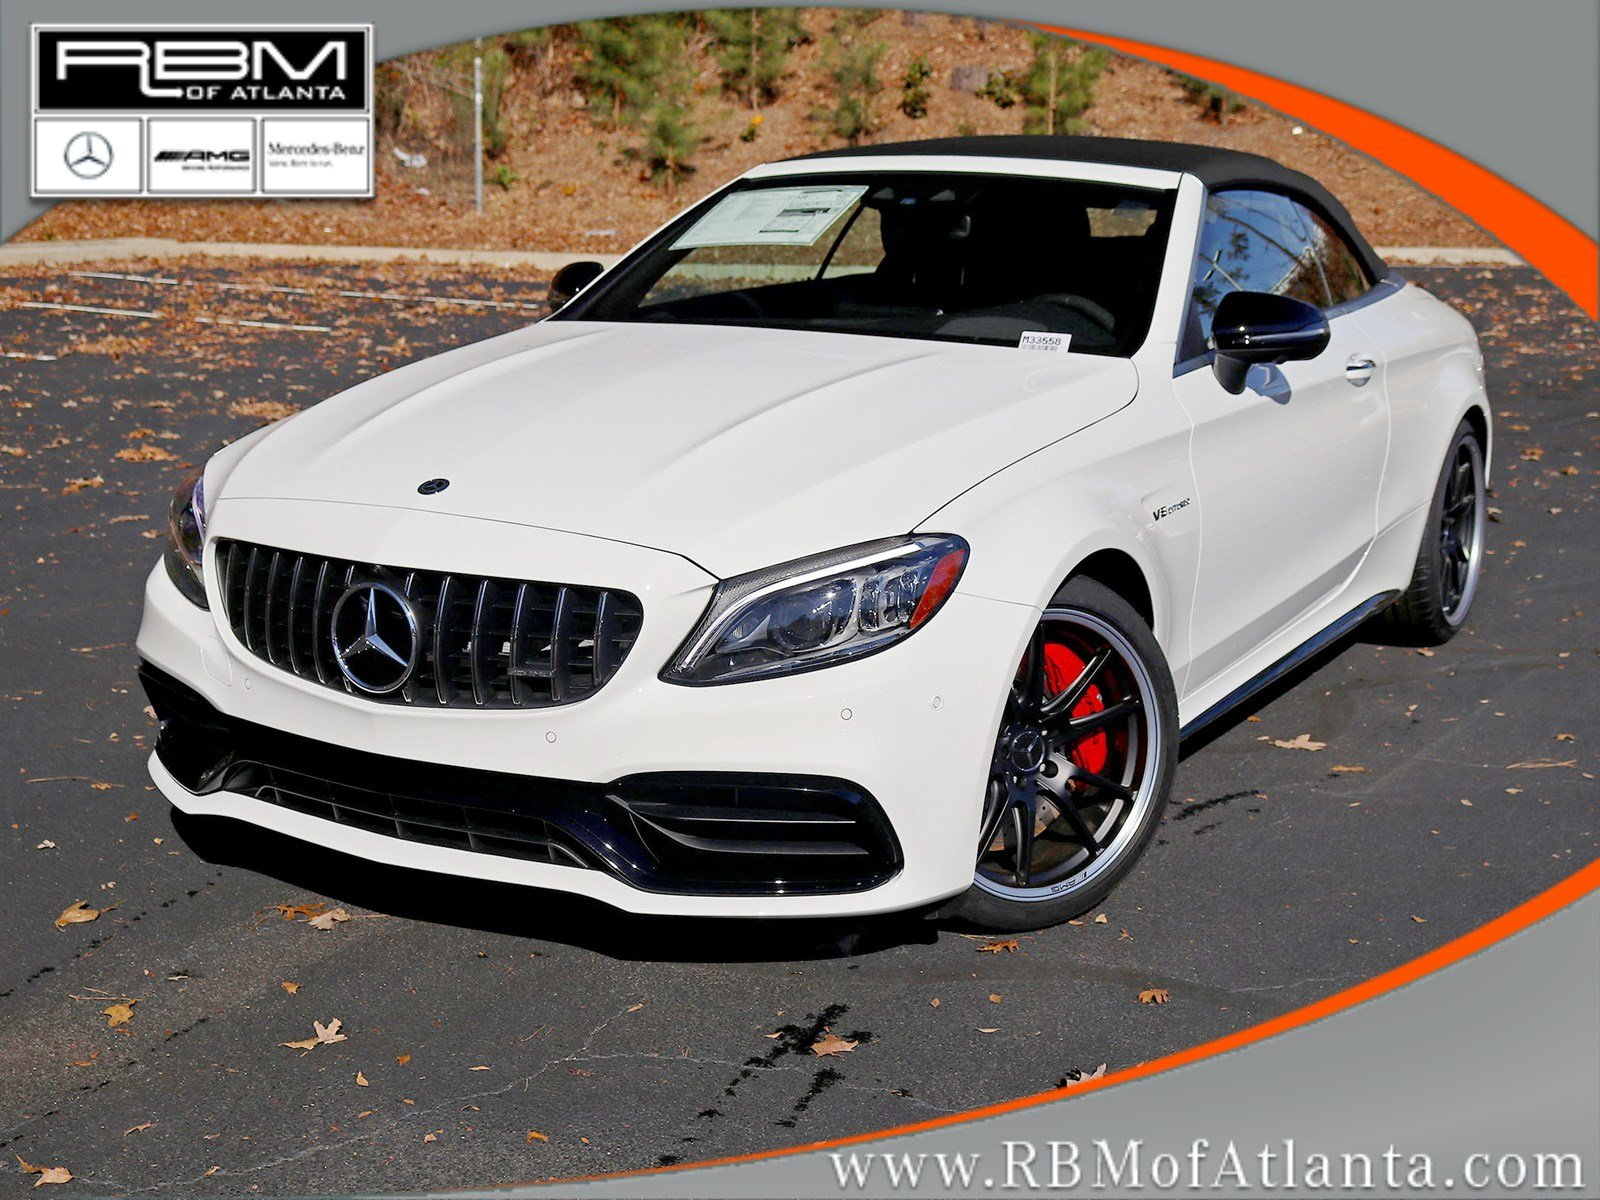 New 2019 Mercedes Benz C Class AMG C 63 S Cabriolet CABRIOLET in